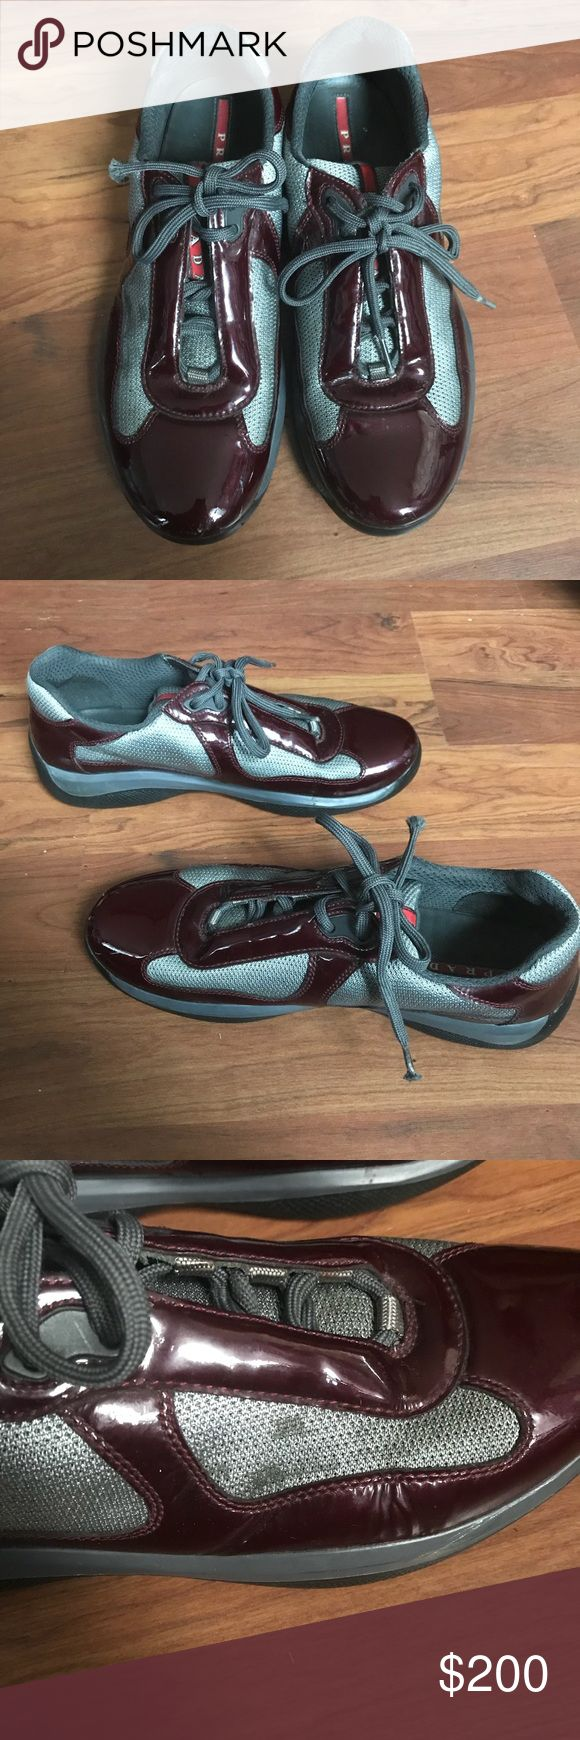 Prada shoes men burgundy Authentic, size 7.5 Men, PS0906, has some scuff on the toe cap and stains in the side of the shoe pictured above. However I believe it can be removed. Original price $600. Price negotiable. Does not come with the box Prada Shoes Sneakers